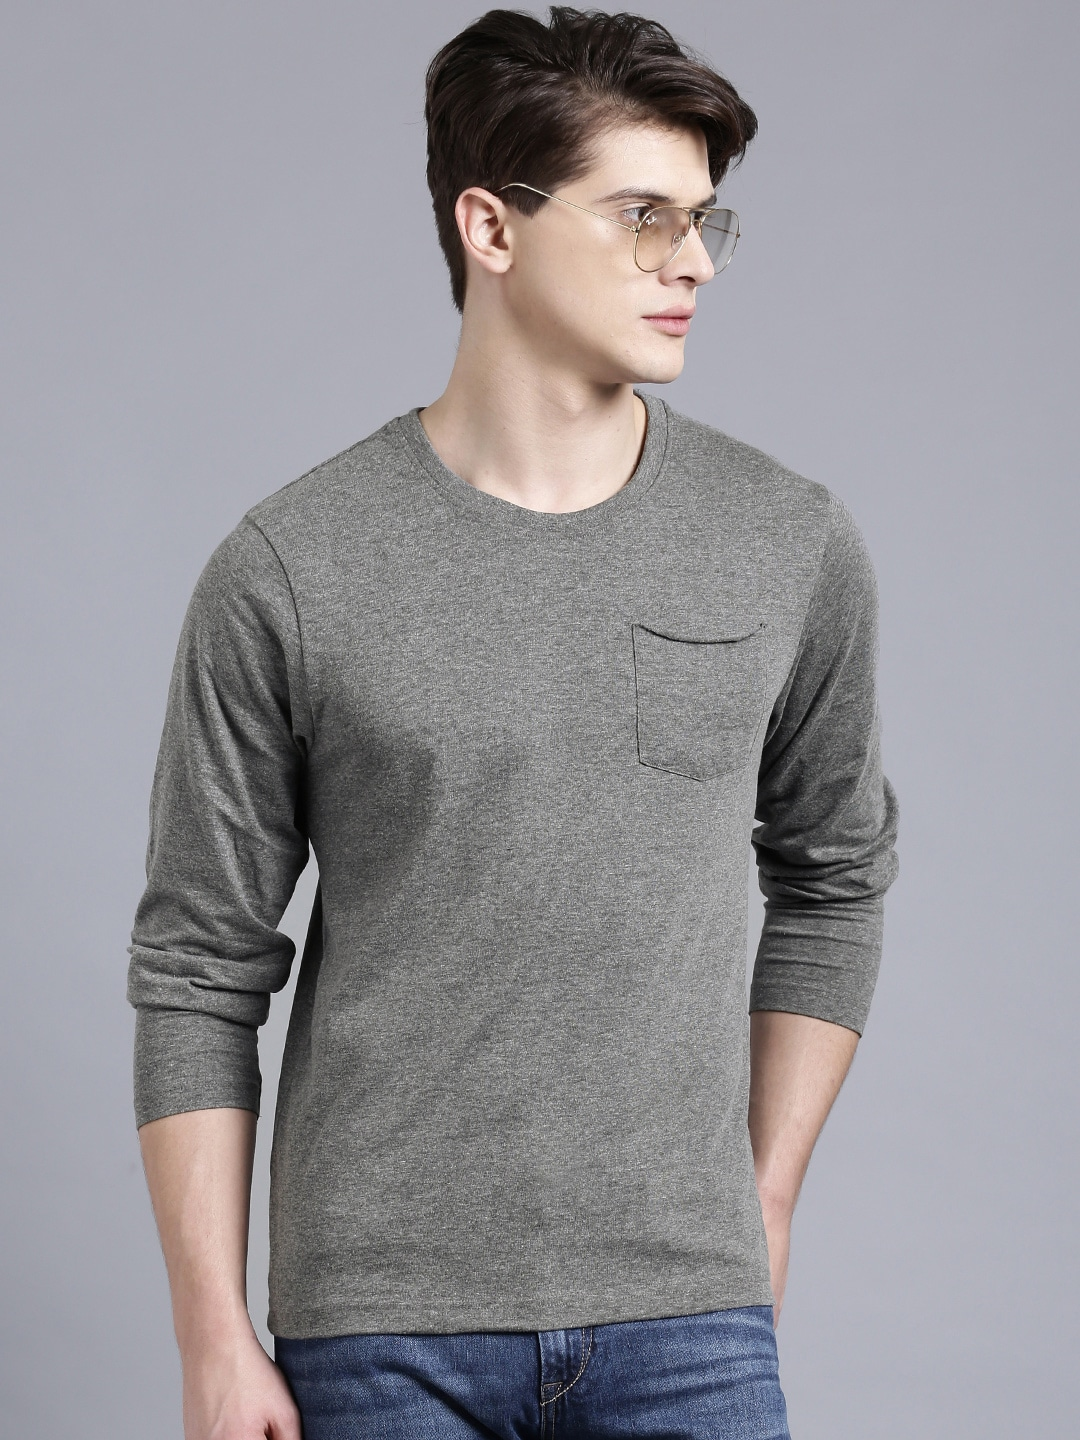 Checkout the exclusive collection of branded t-shirts for men on Shoppers Stop's website. Order Mens T Shirts Online & avail Free Shipping Cash on Delivery.